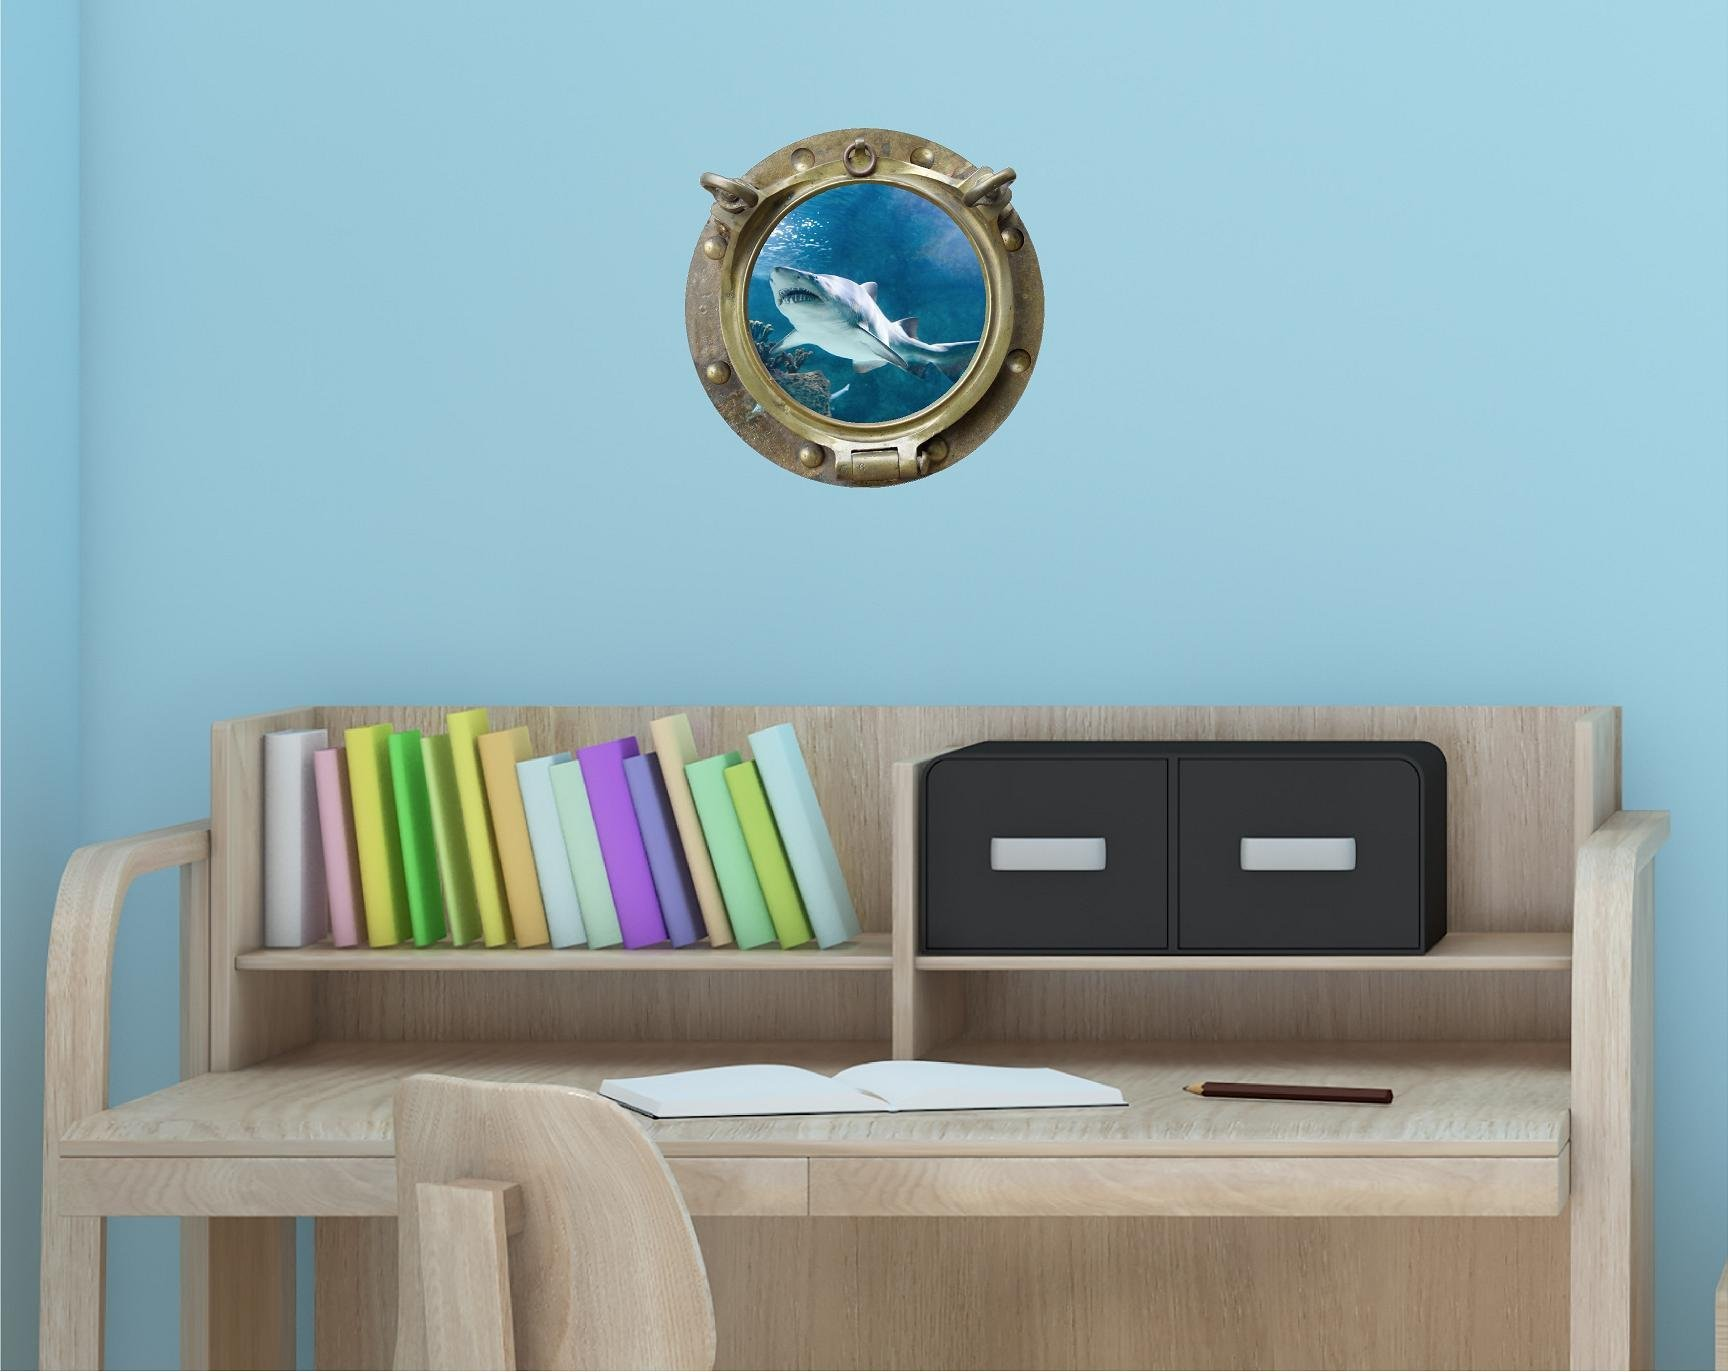 12'' Porthole Sea Window Instant View SHARK #3 ANTIQUE BRONZE Wall Decal Kids Sticker Room Home Art Décor SMALL